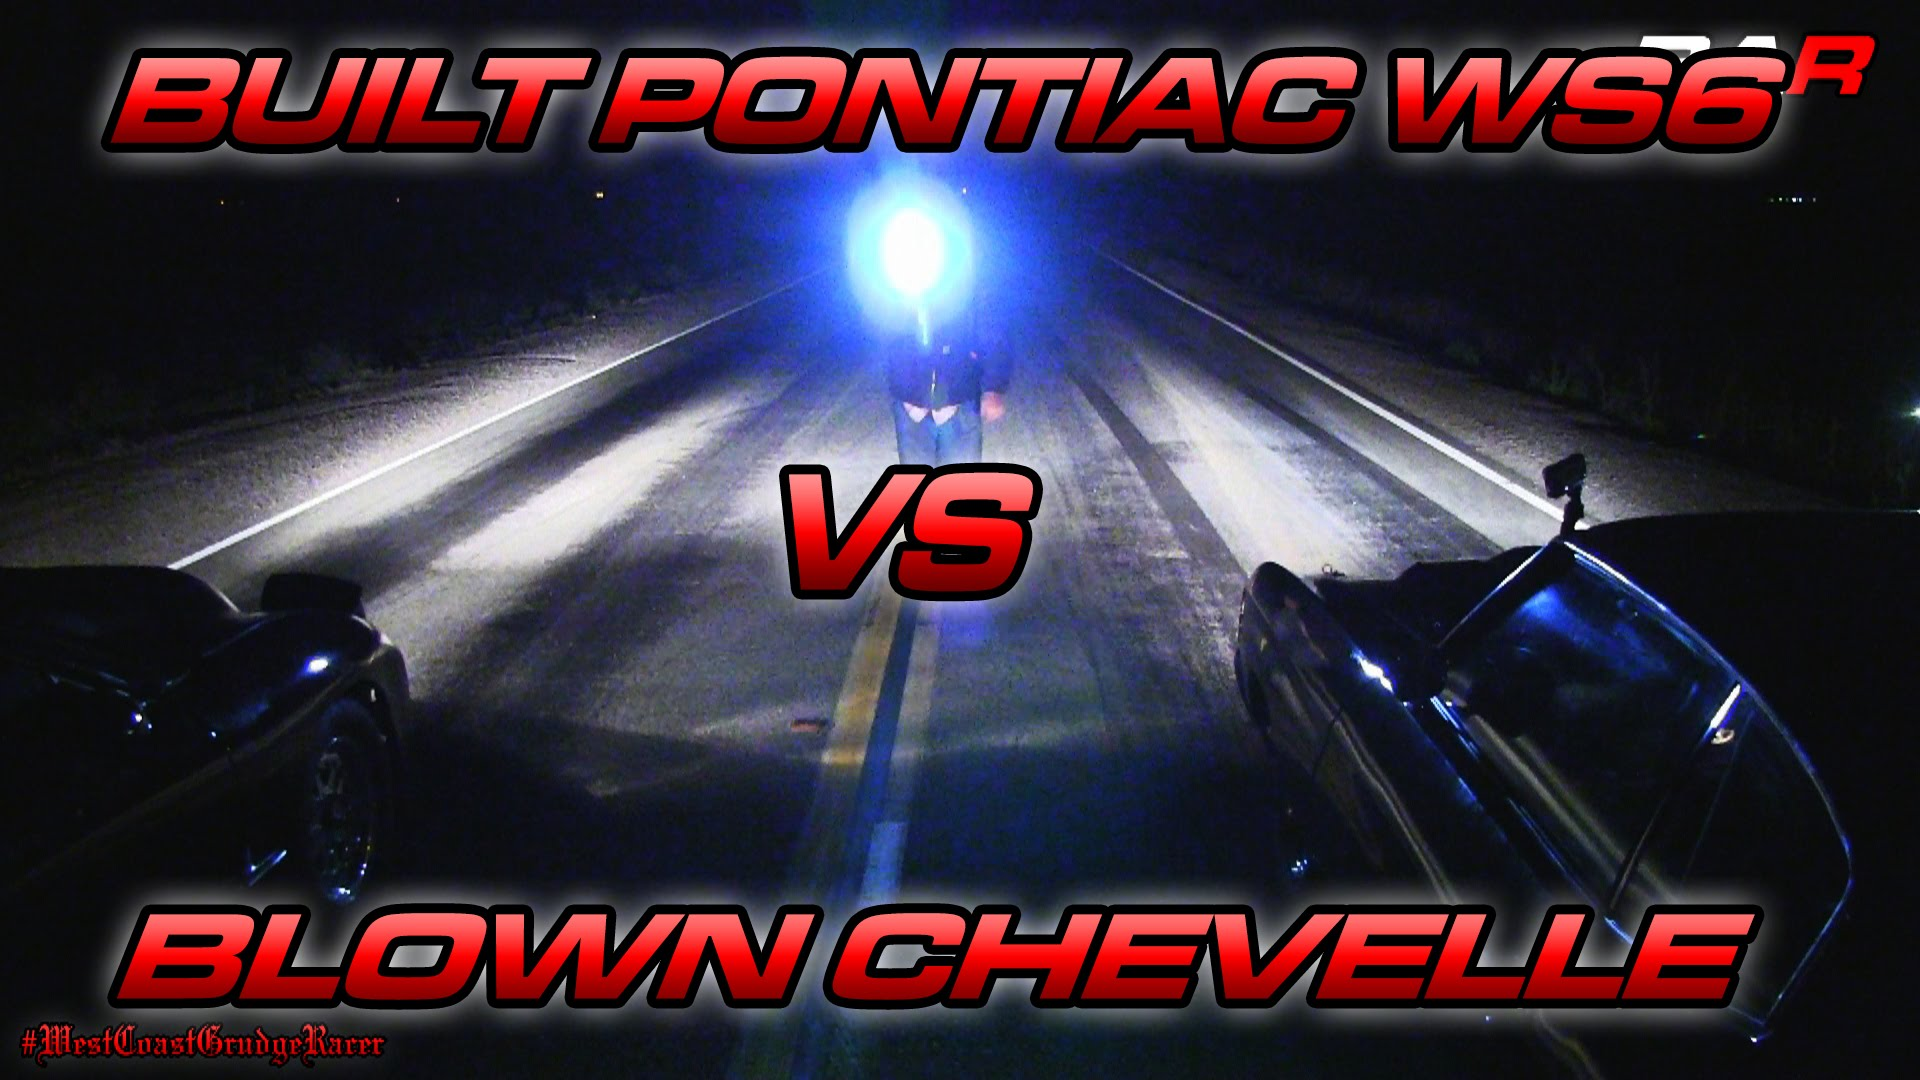 Old Schol Blown Chevelle vs New School Trans Am WS6